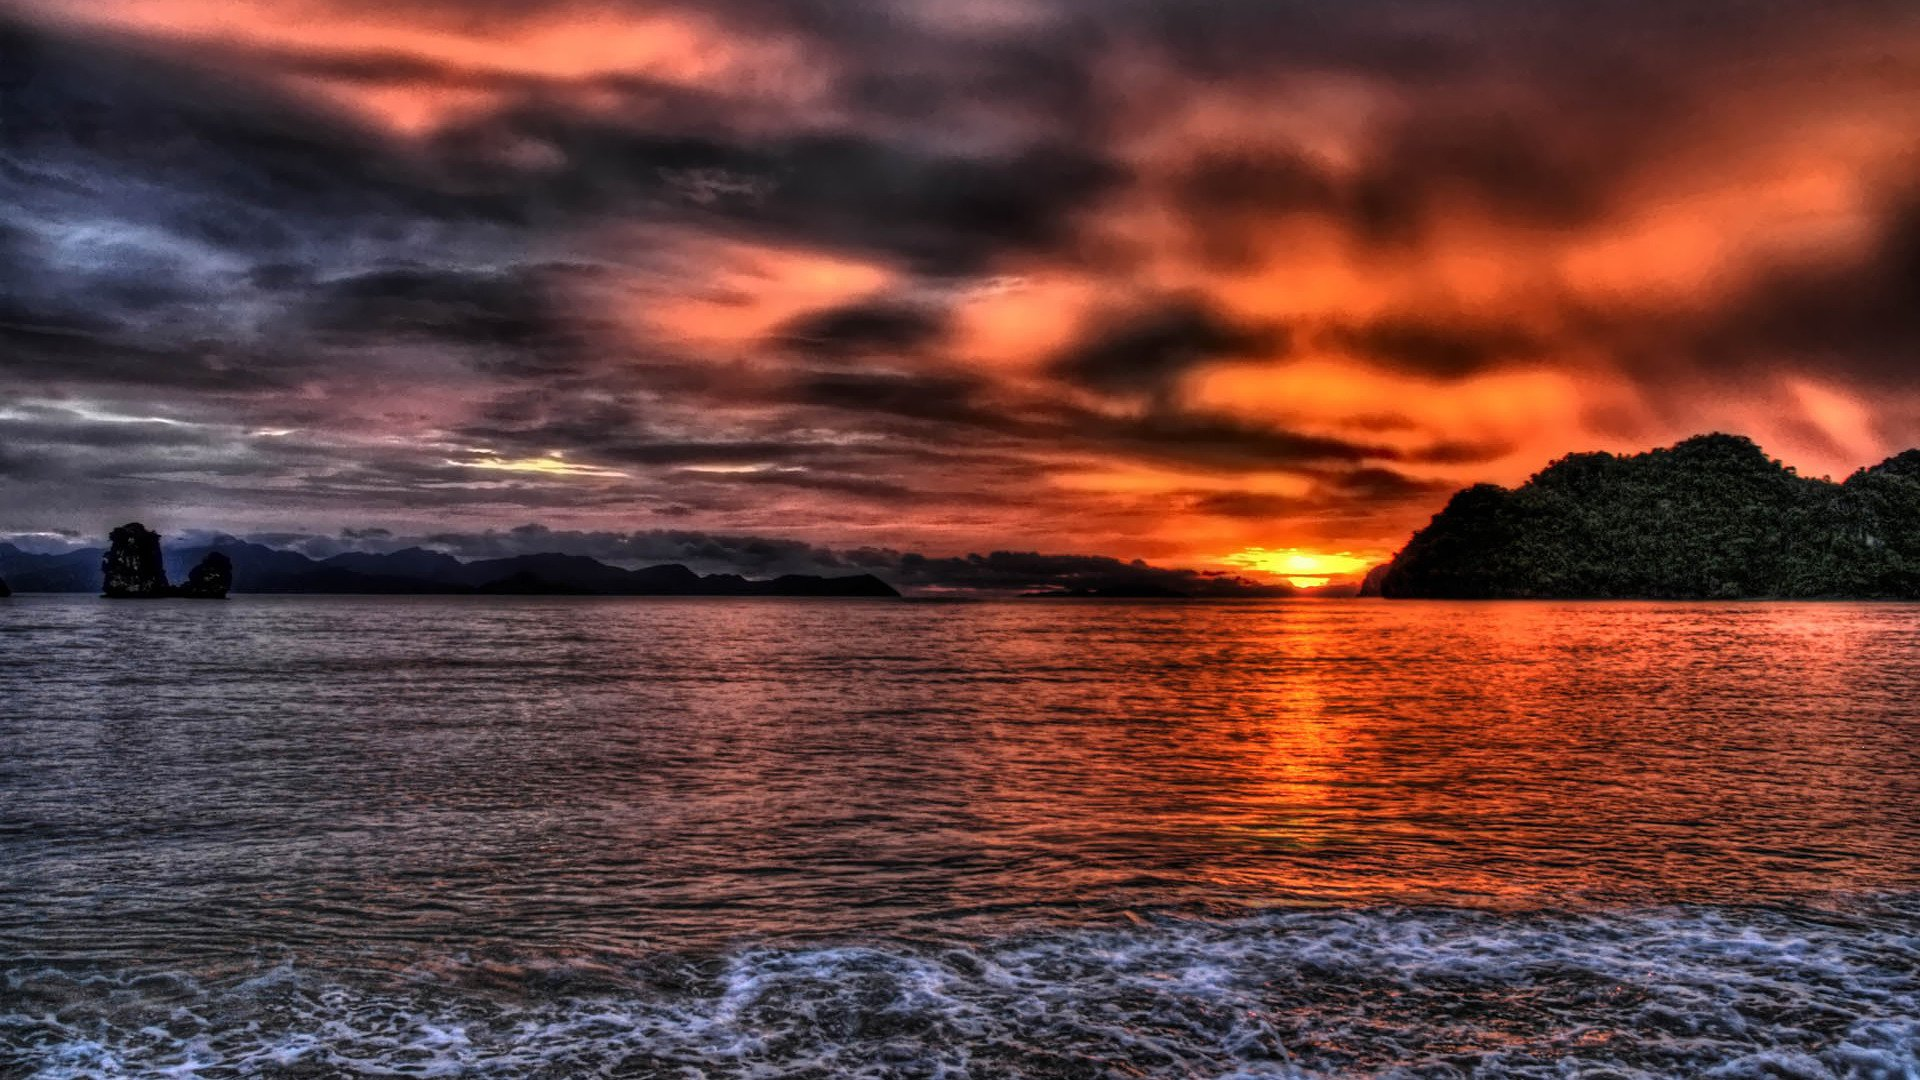 Sunset Beach Wallpaper HD   downloadwallpaperorg 1920x1080